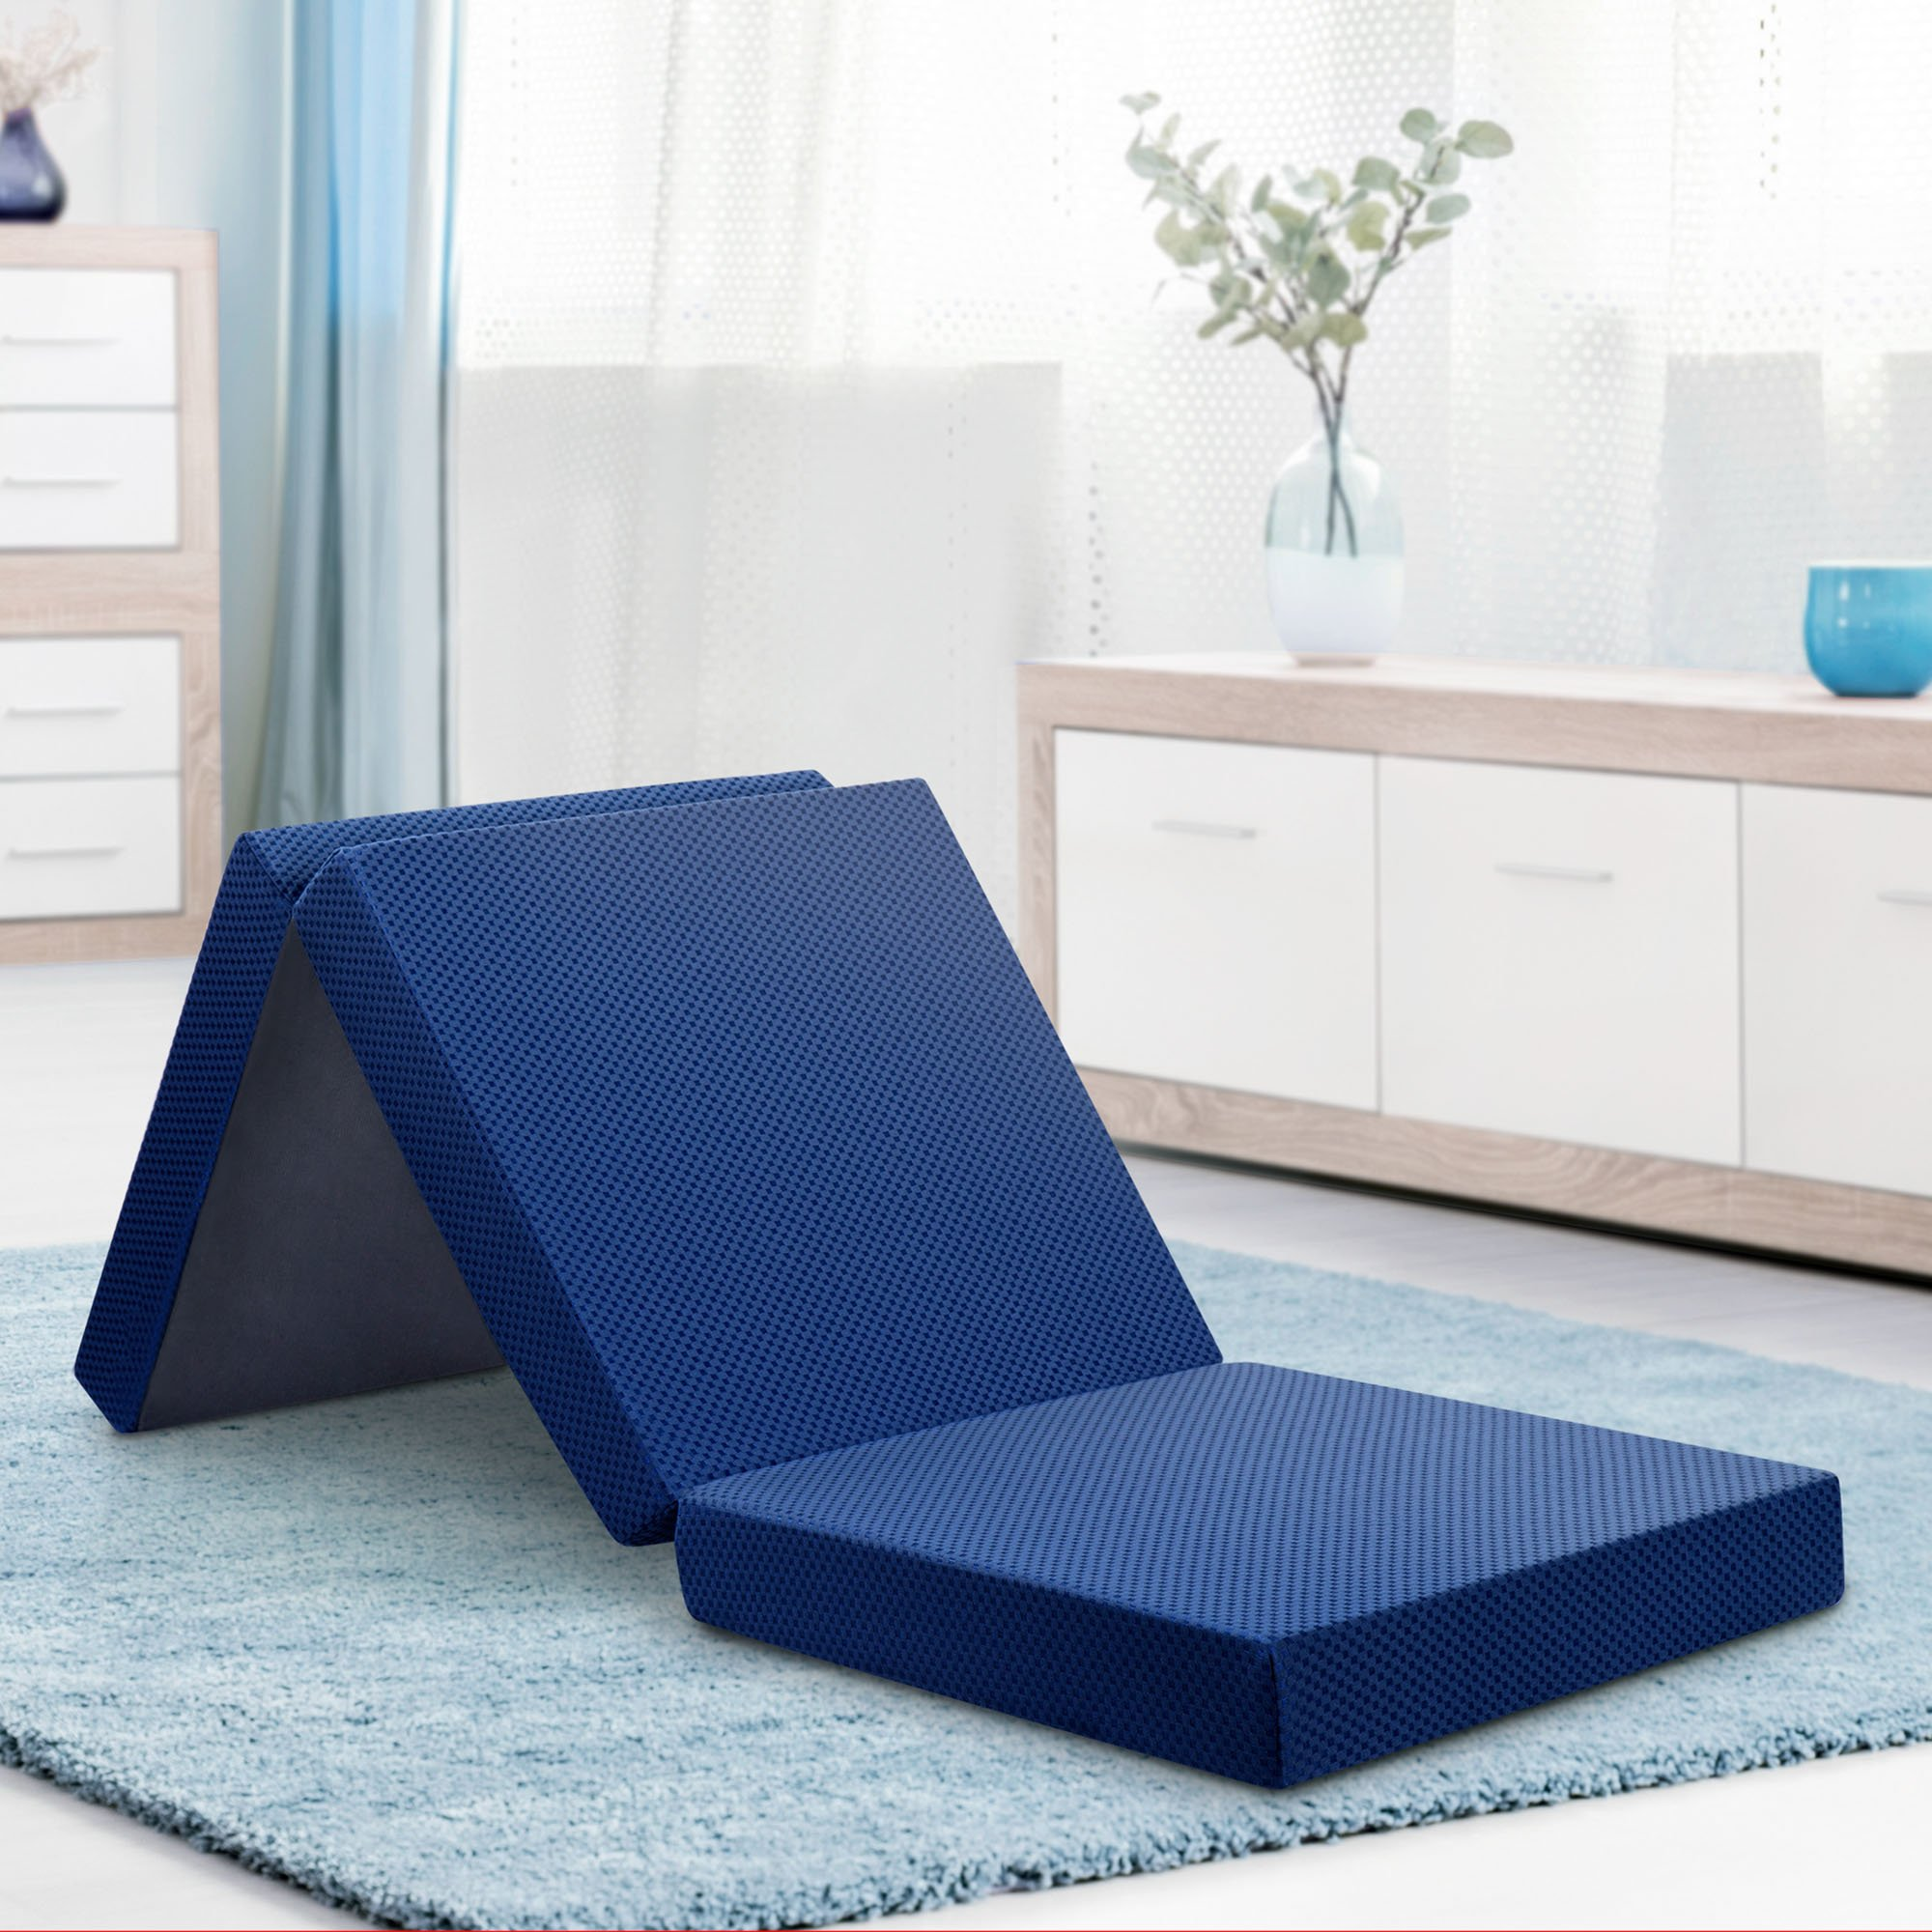 Olee Sleep Folding Bed Mattress, Standard, Blue by Olee Sleep